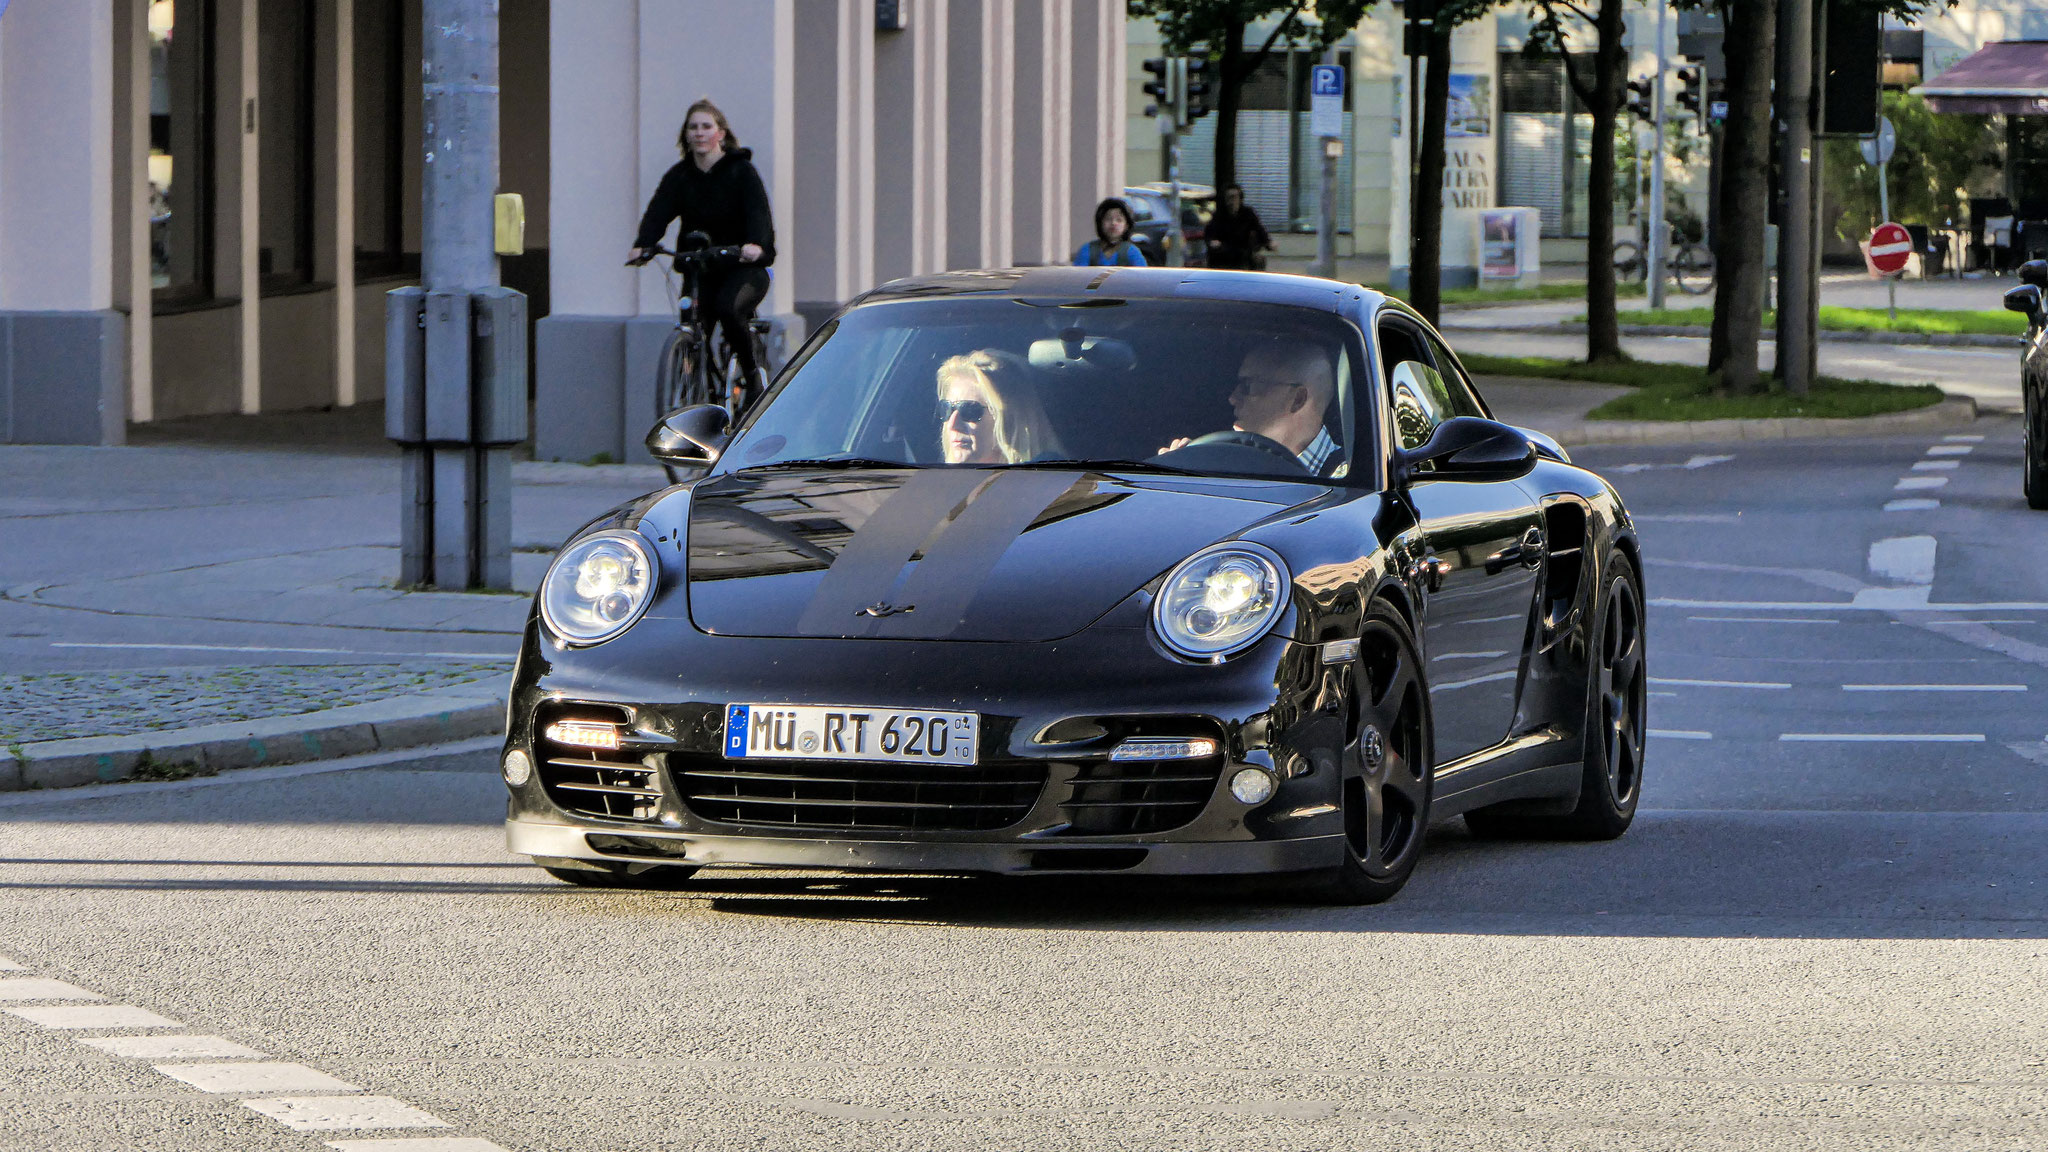 RUF Porsche 997 Turbo - MÜ-RT-620